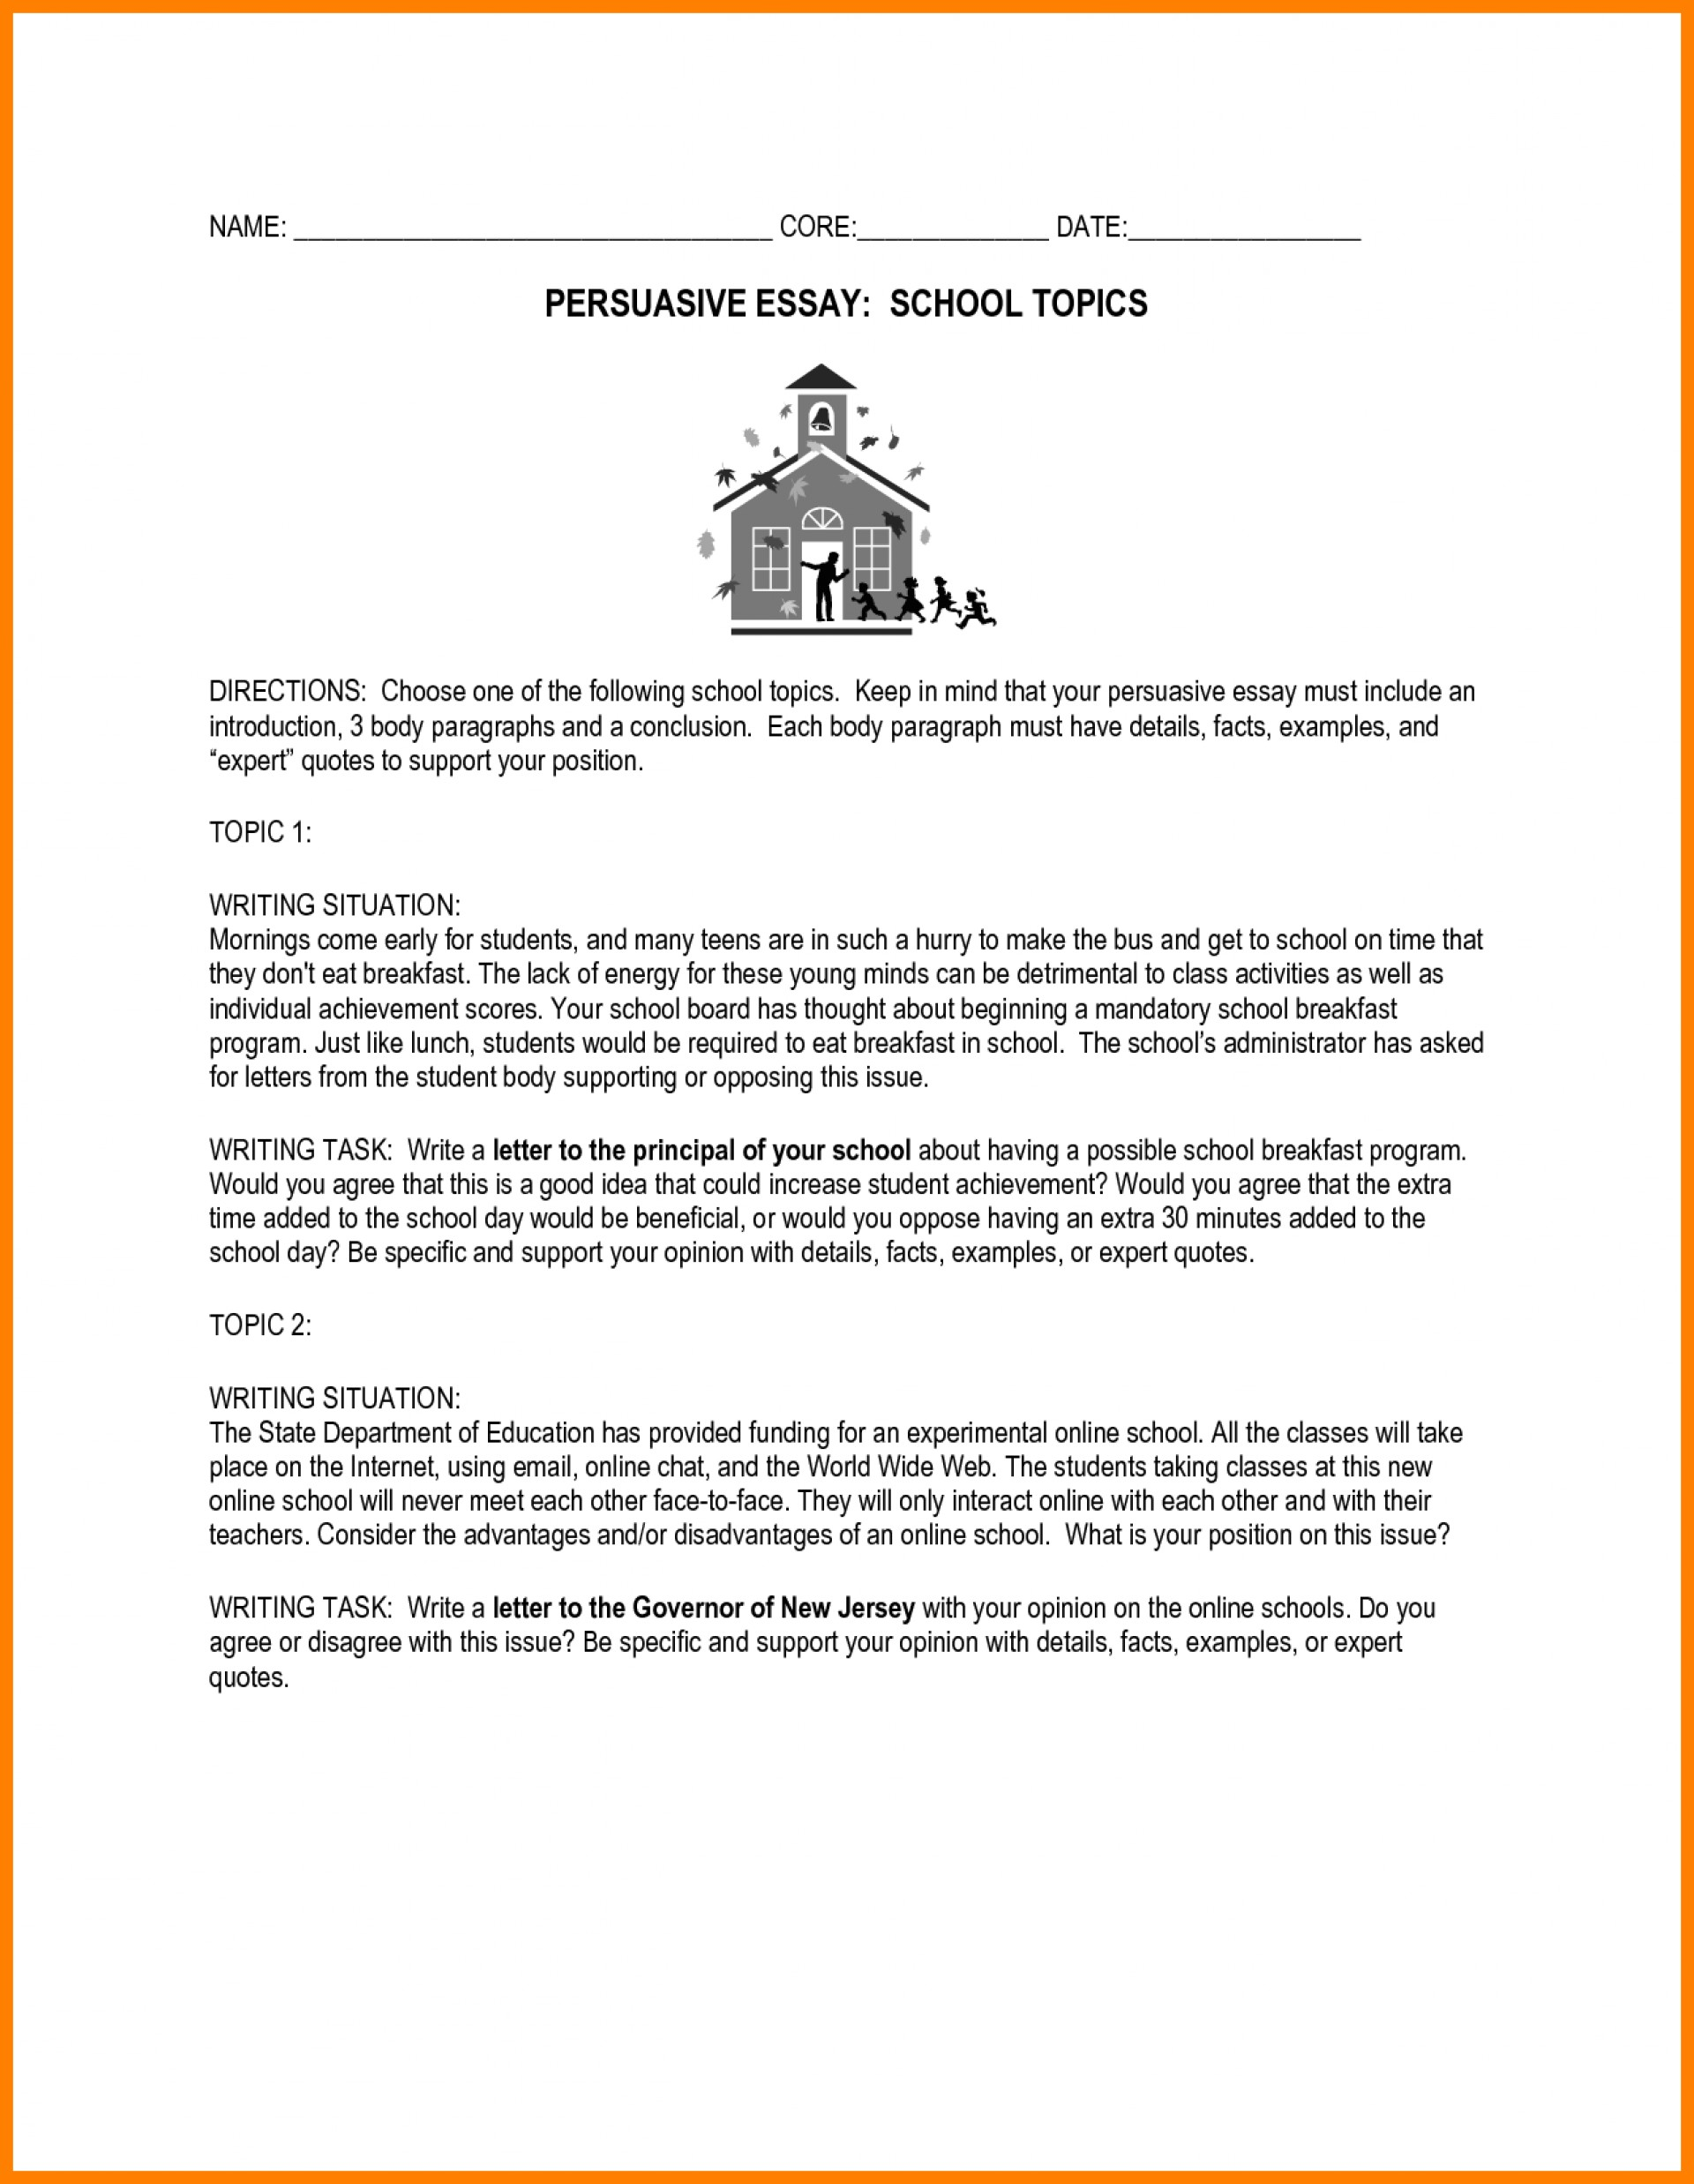 009 Essay Example Persuasive Topics Middle School High Essays Uniforms Examples For Address Ex About Speech Education Rules Issues Uniform Imposing Students Interest Pdf Prompts 1920